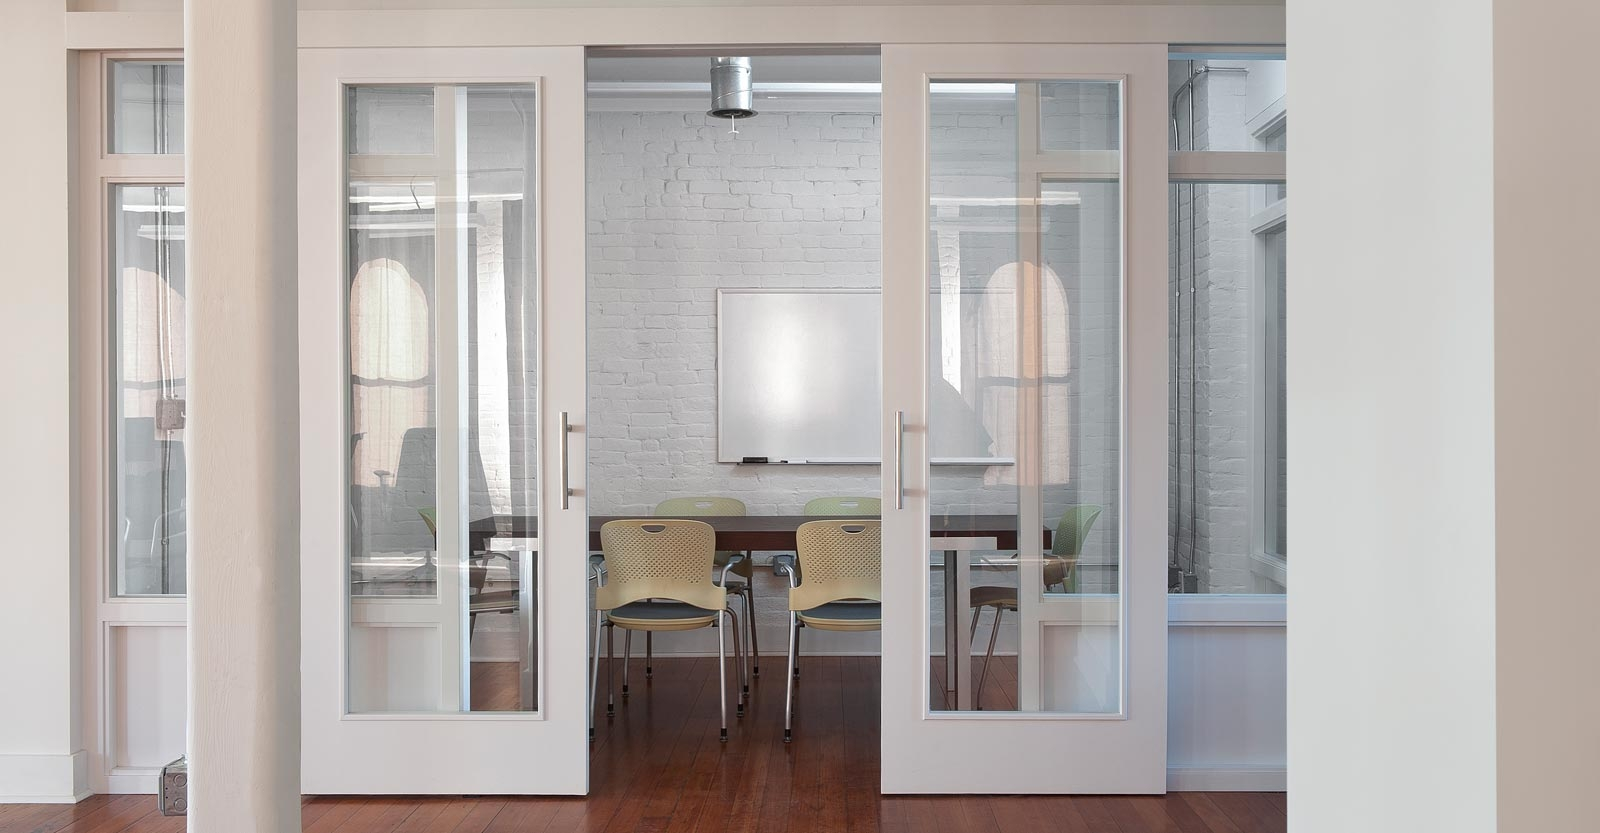 Sliding Glass Doors To Separate Roomssliding doors to separate rooms saudireiki